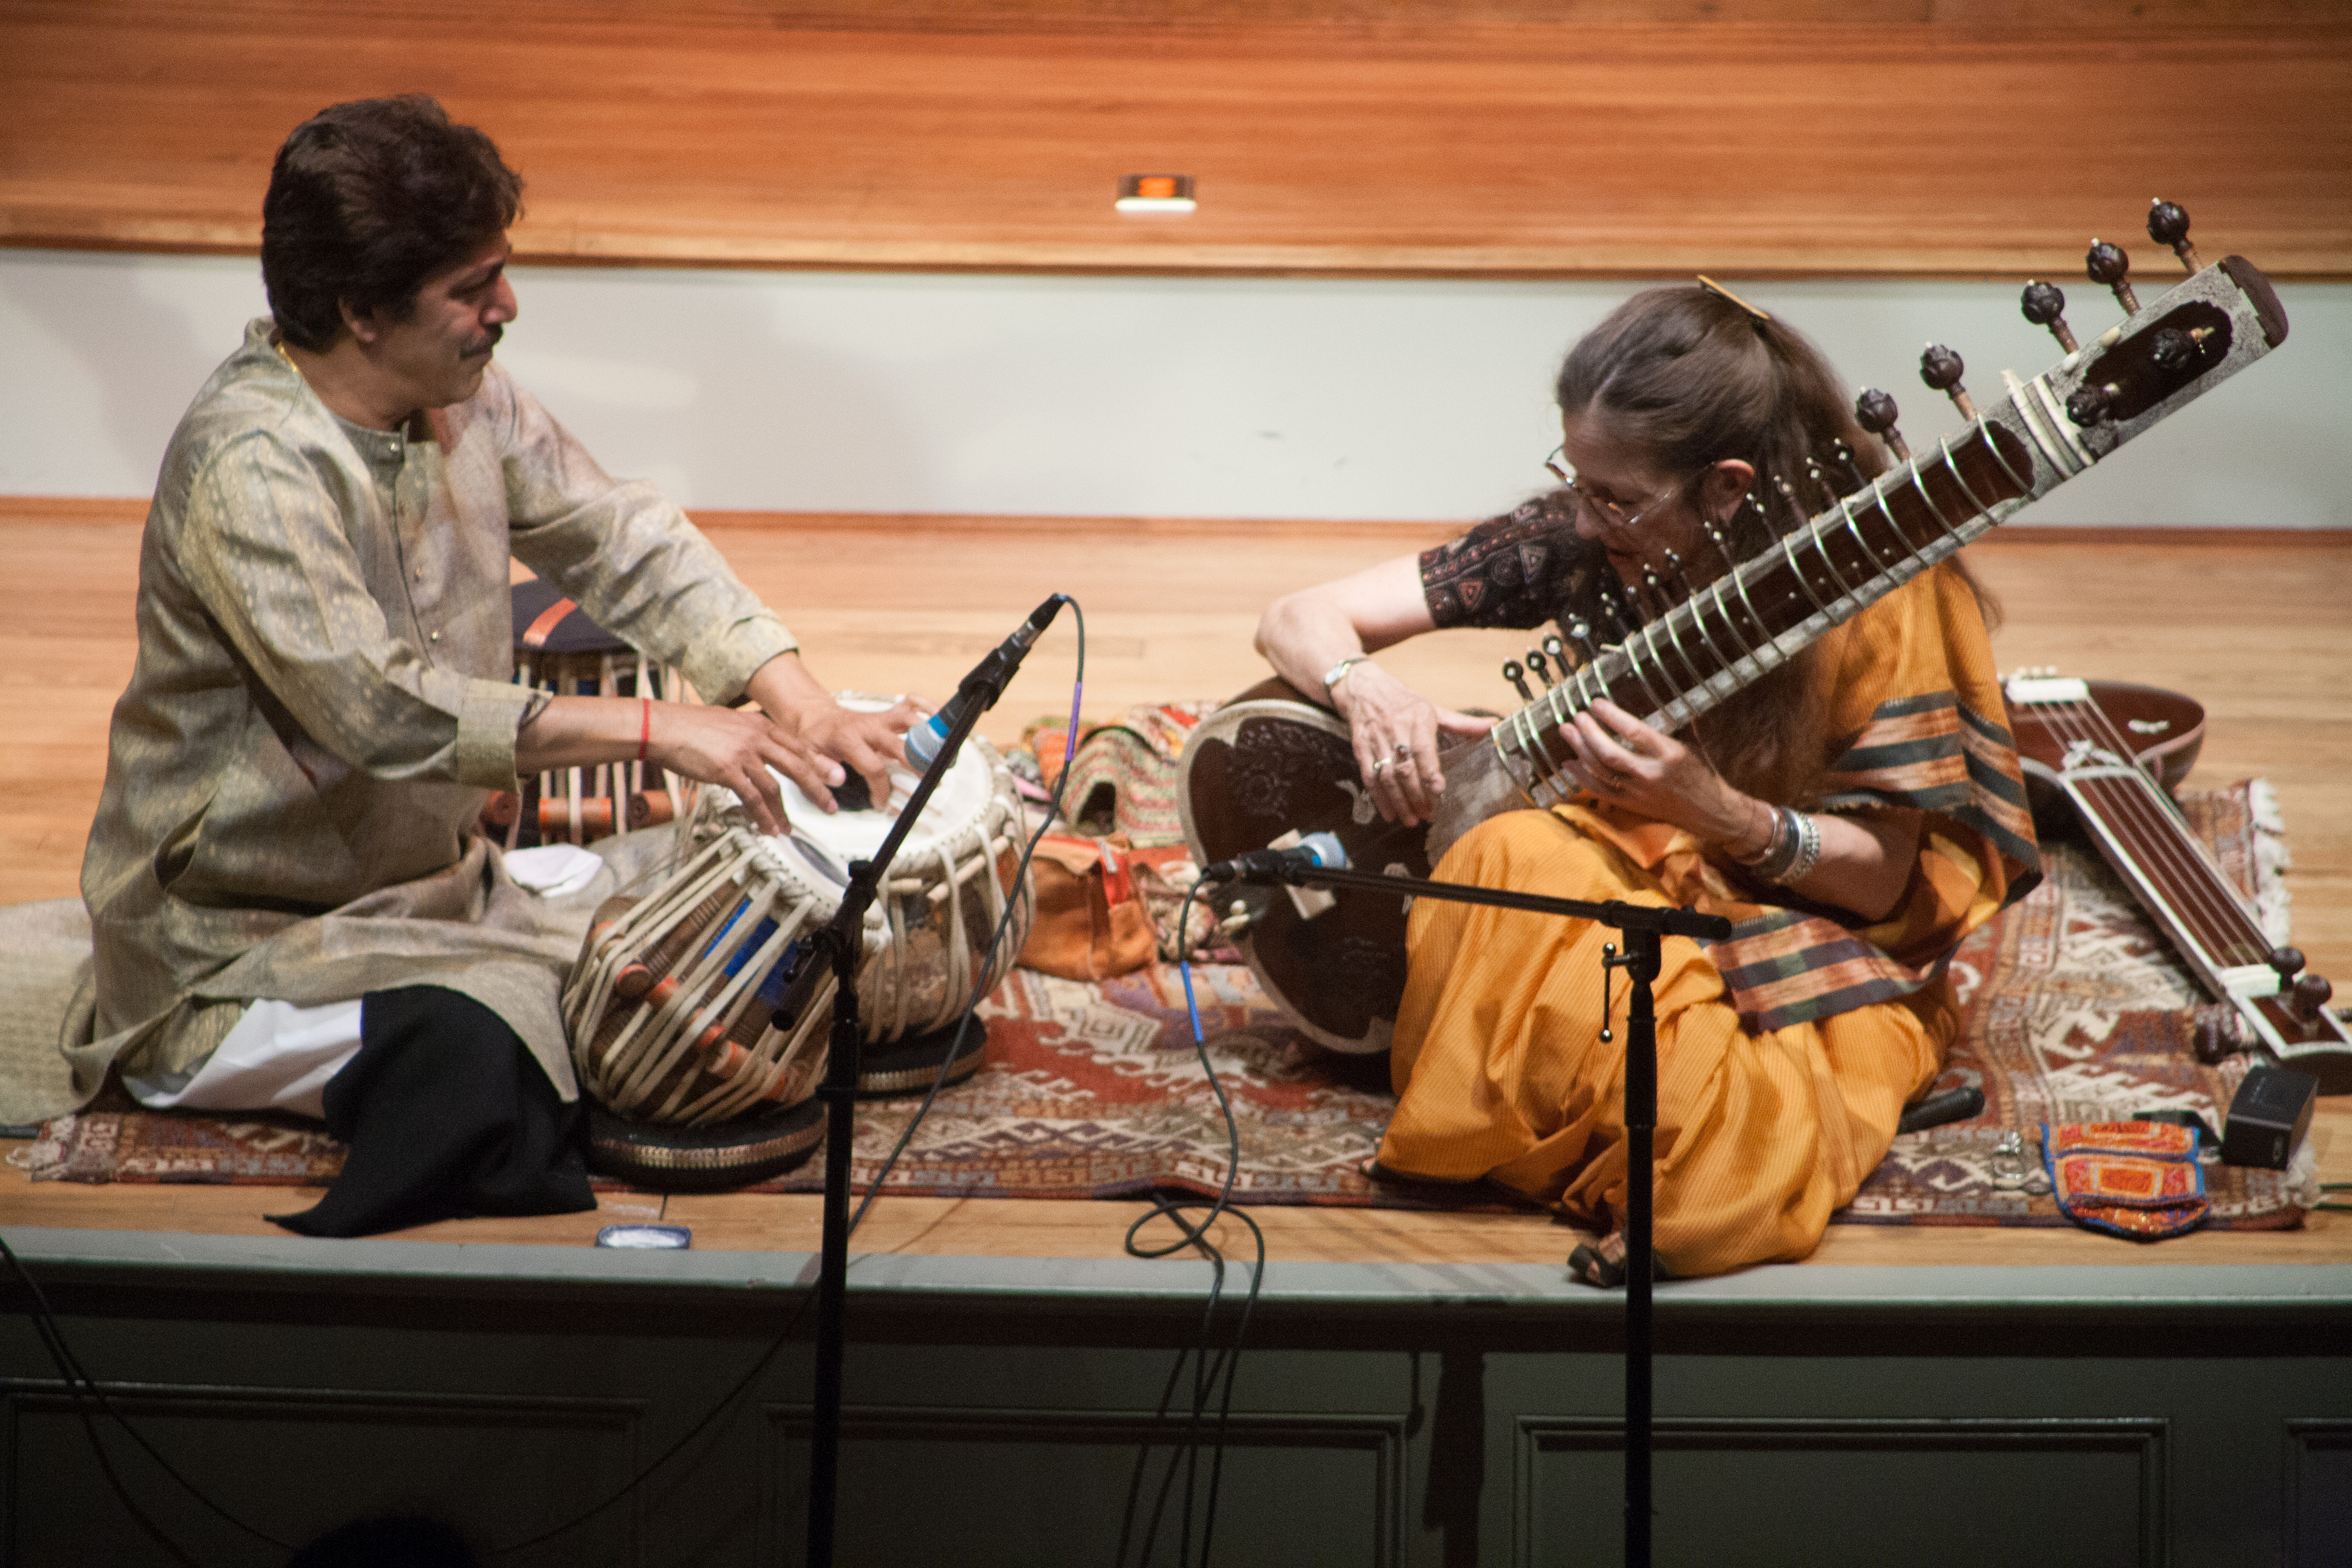 Maihar Melodies - Amie and Shantilal Shah on Sum